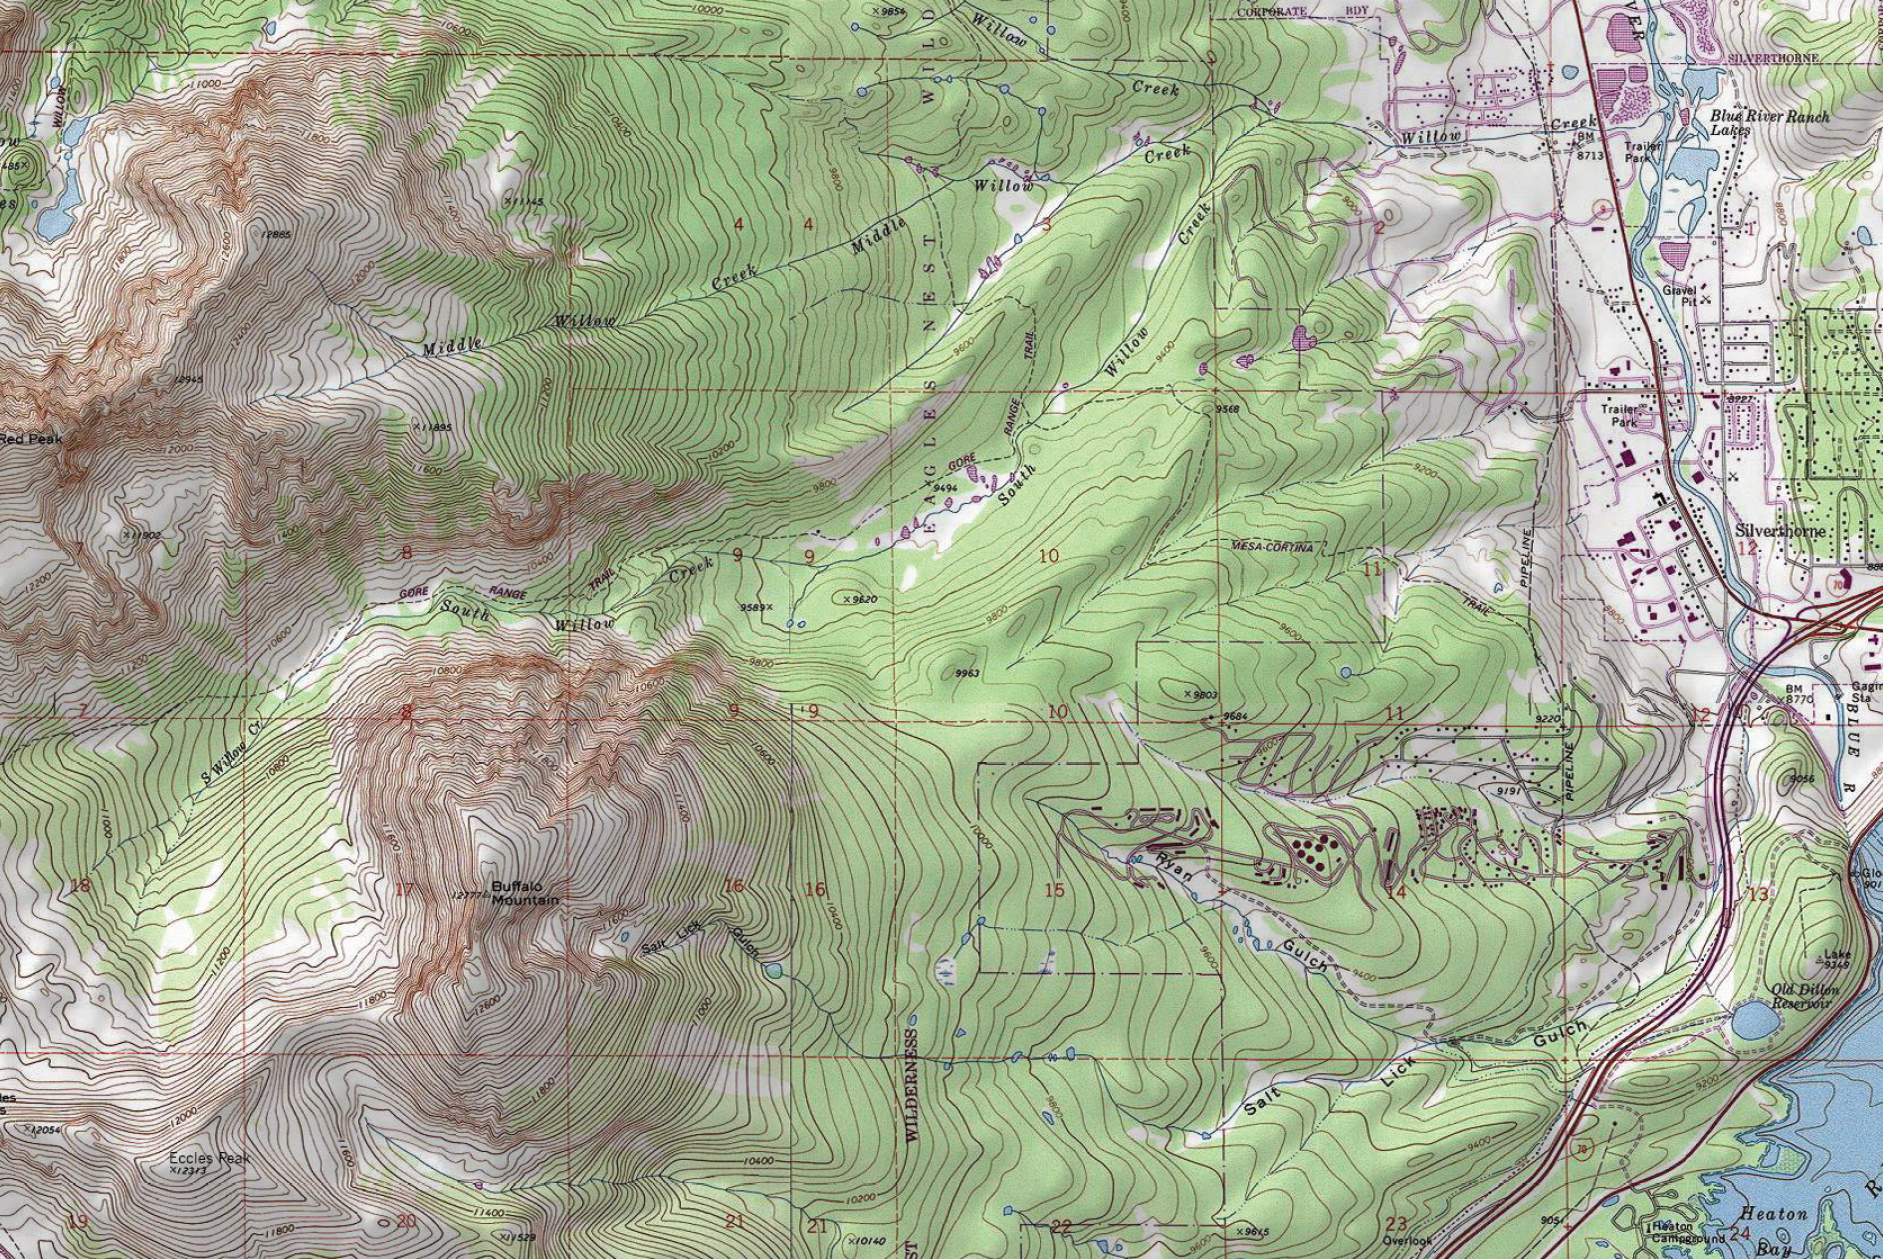 Buffalo Mountain Topo Map Swatch